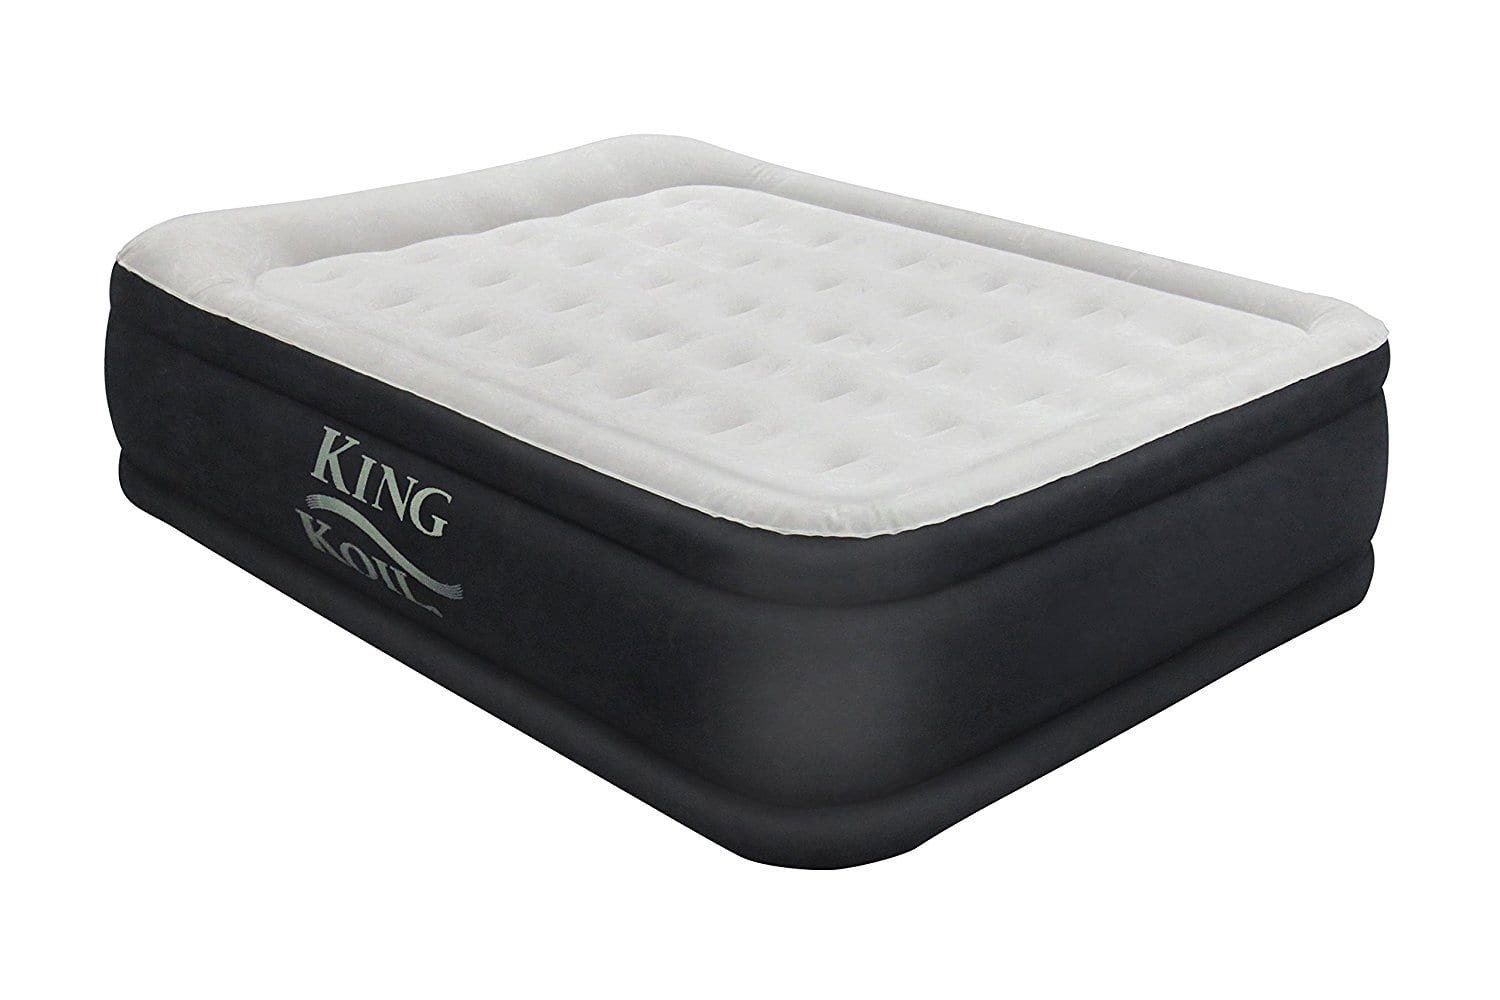 King Koil Best Air Mattress Review by www.snoremagazine.com